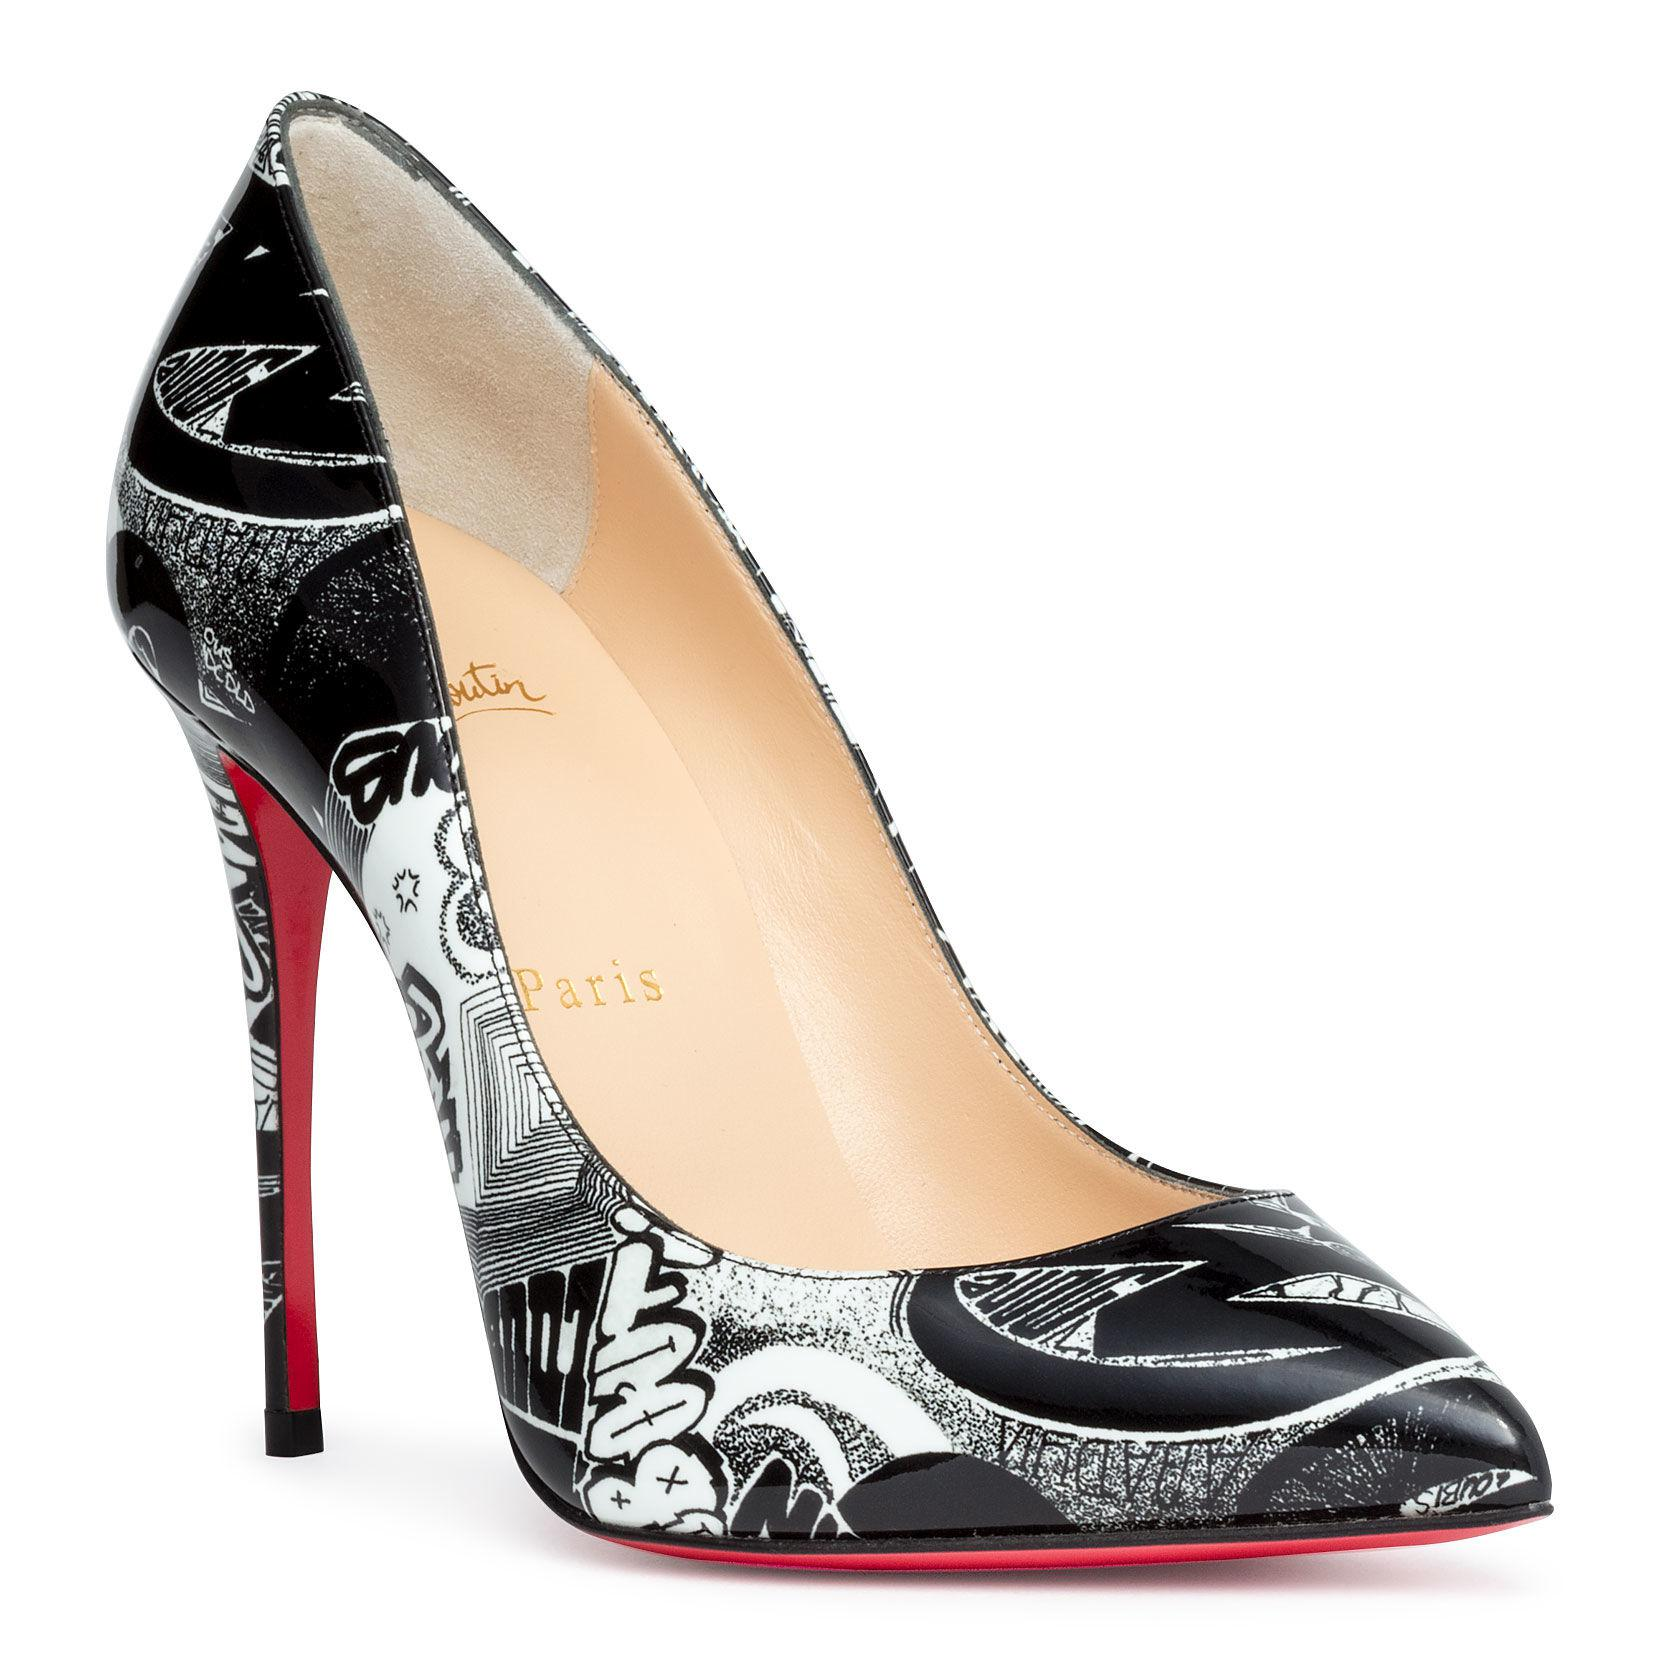 6577b7c4898 Christian Louboutin. Women s Black Pigalle Folies 100 Printed Leather Pumps